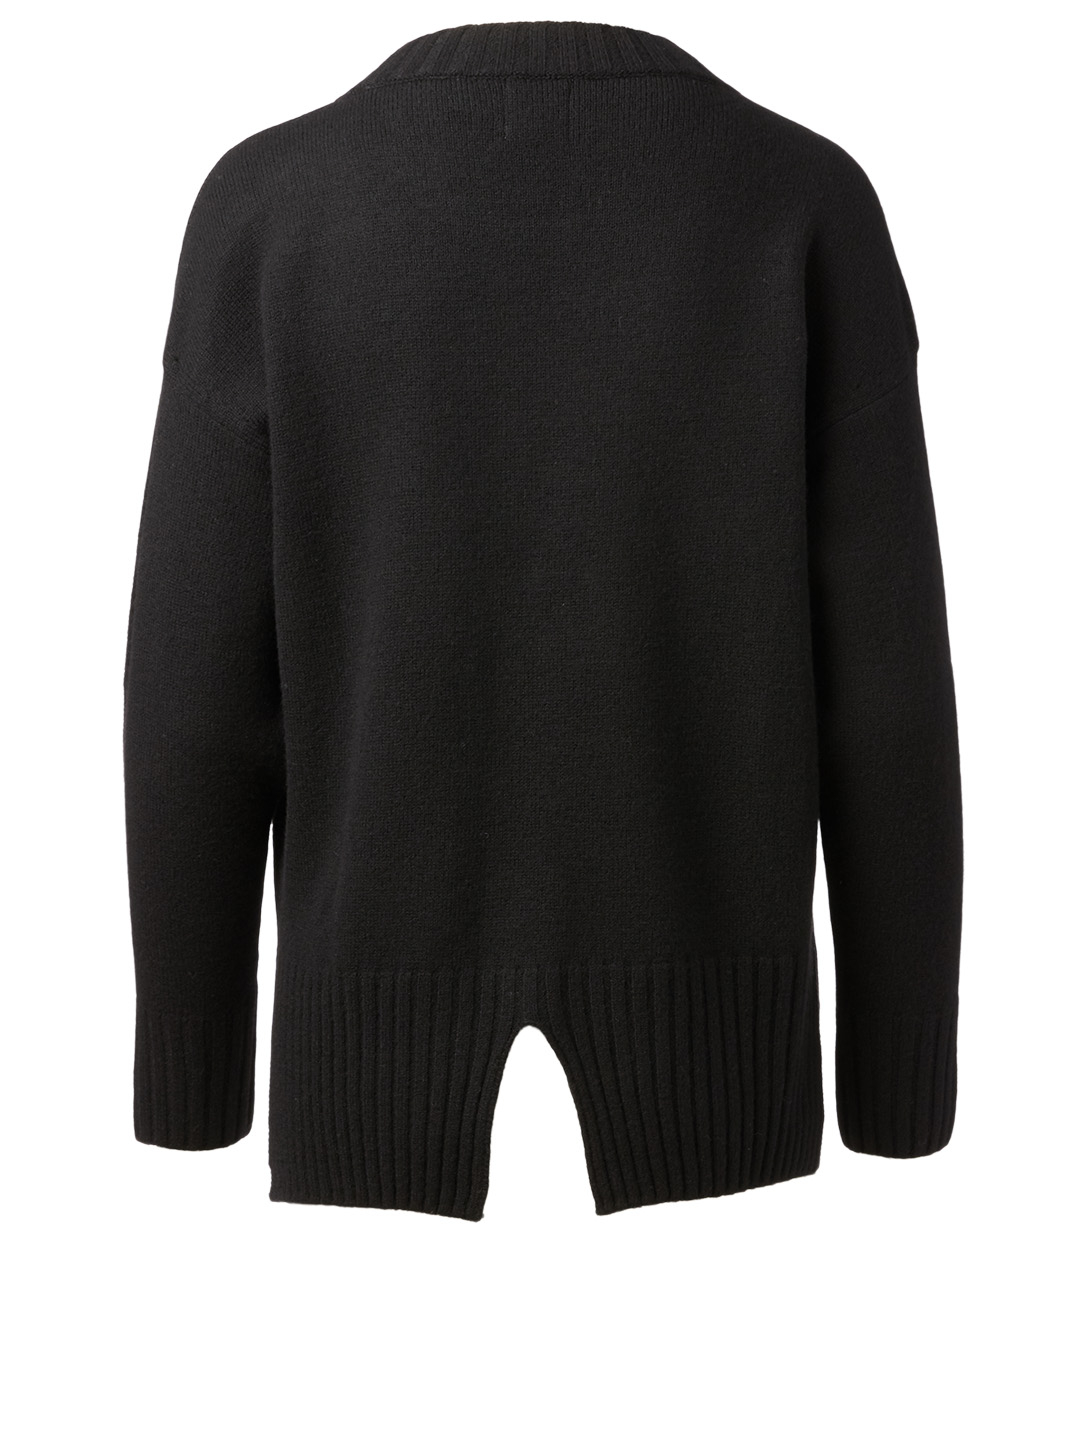 KUHO Wool Crewneck Sweater Women's Black